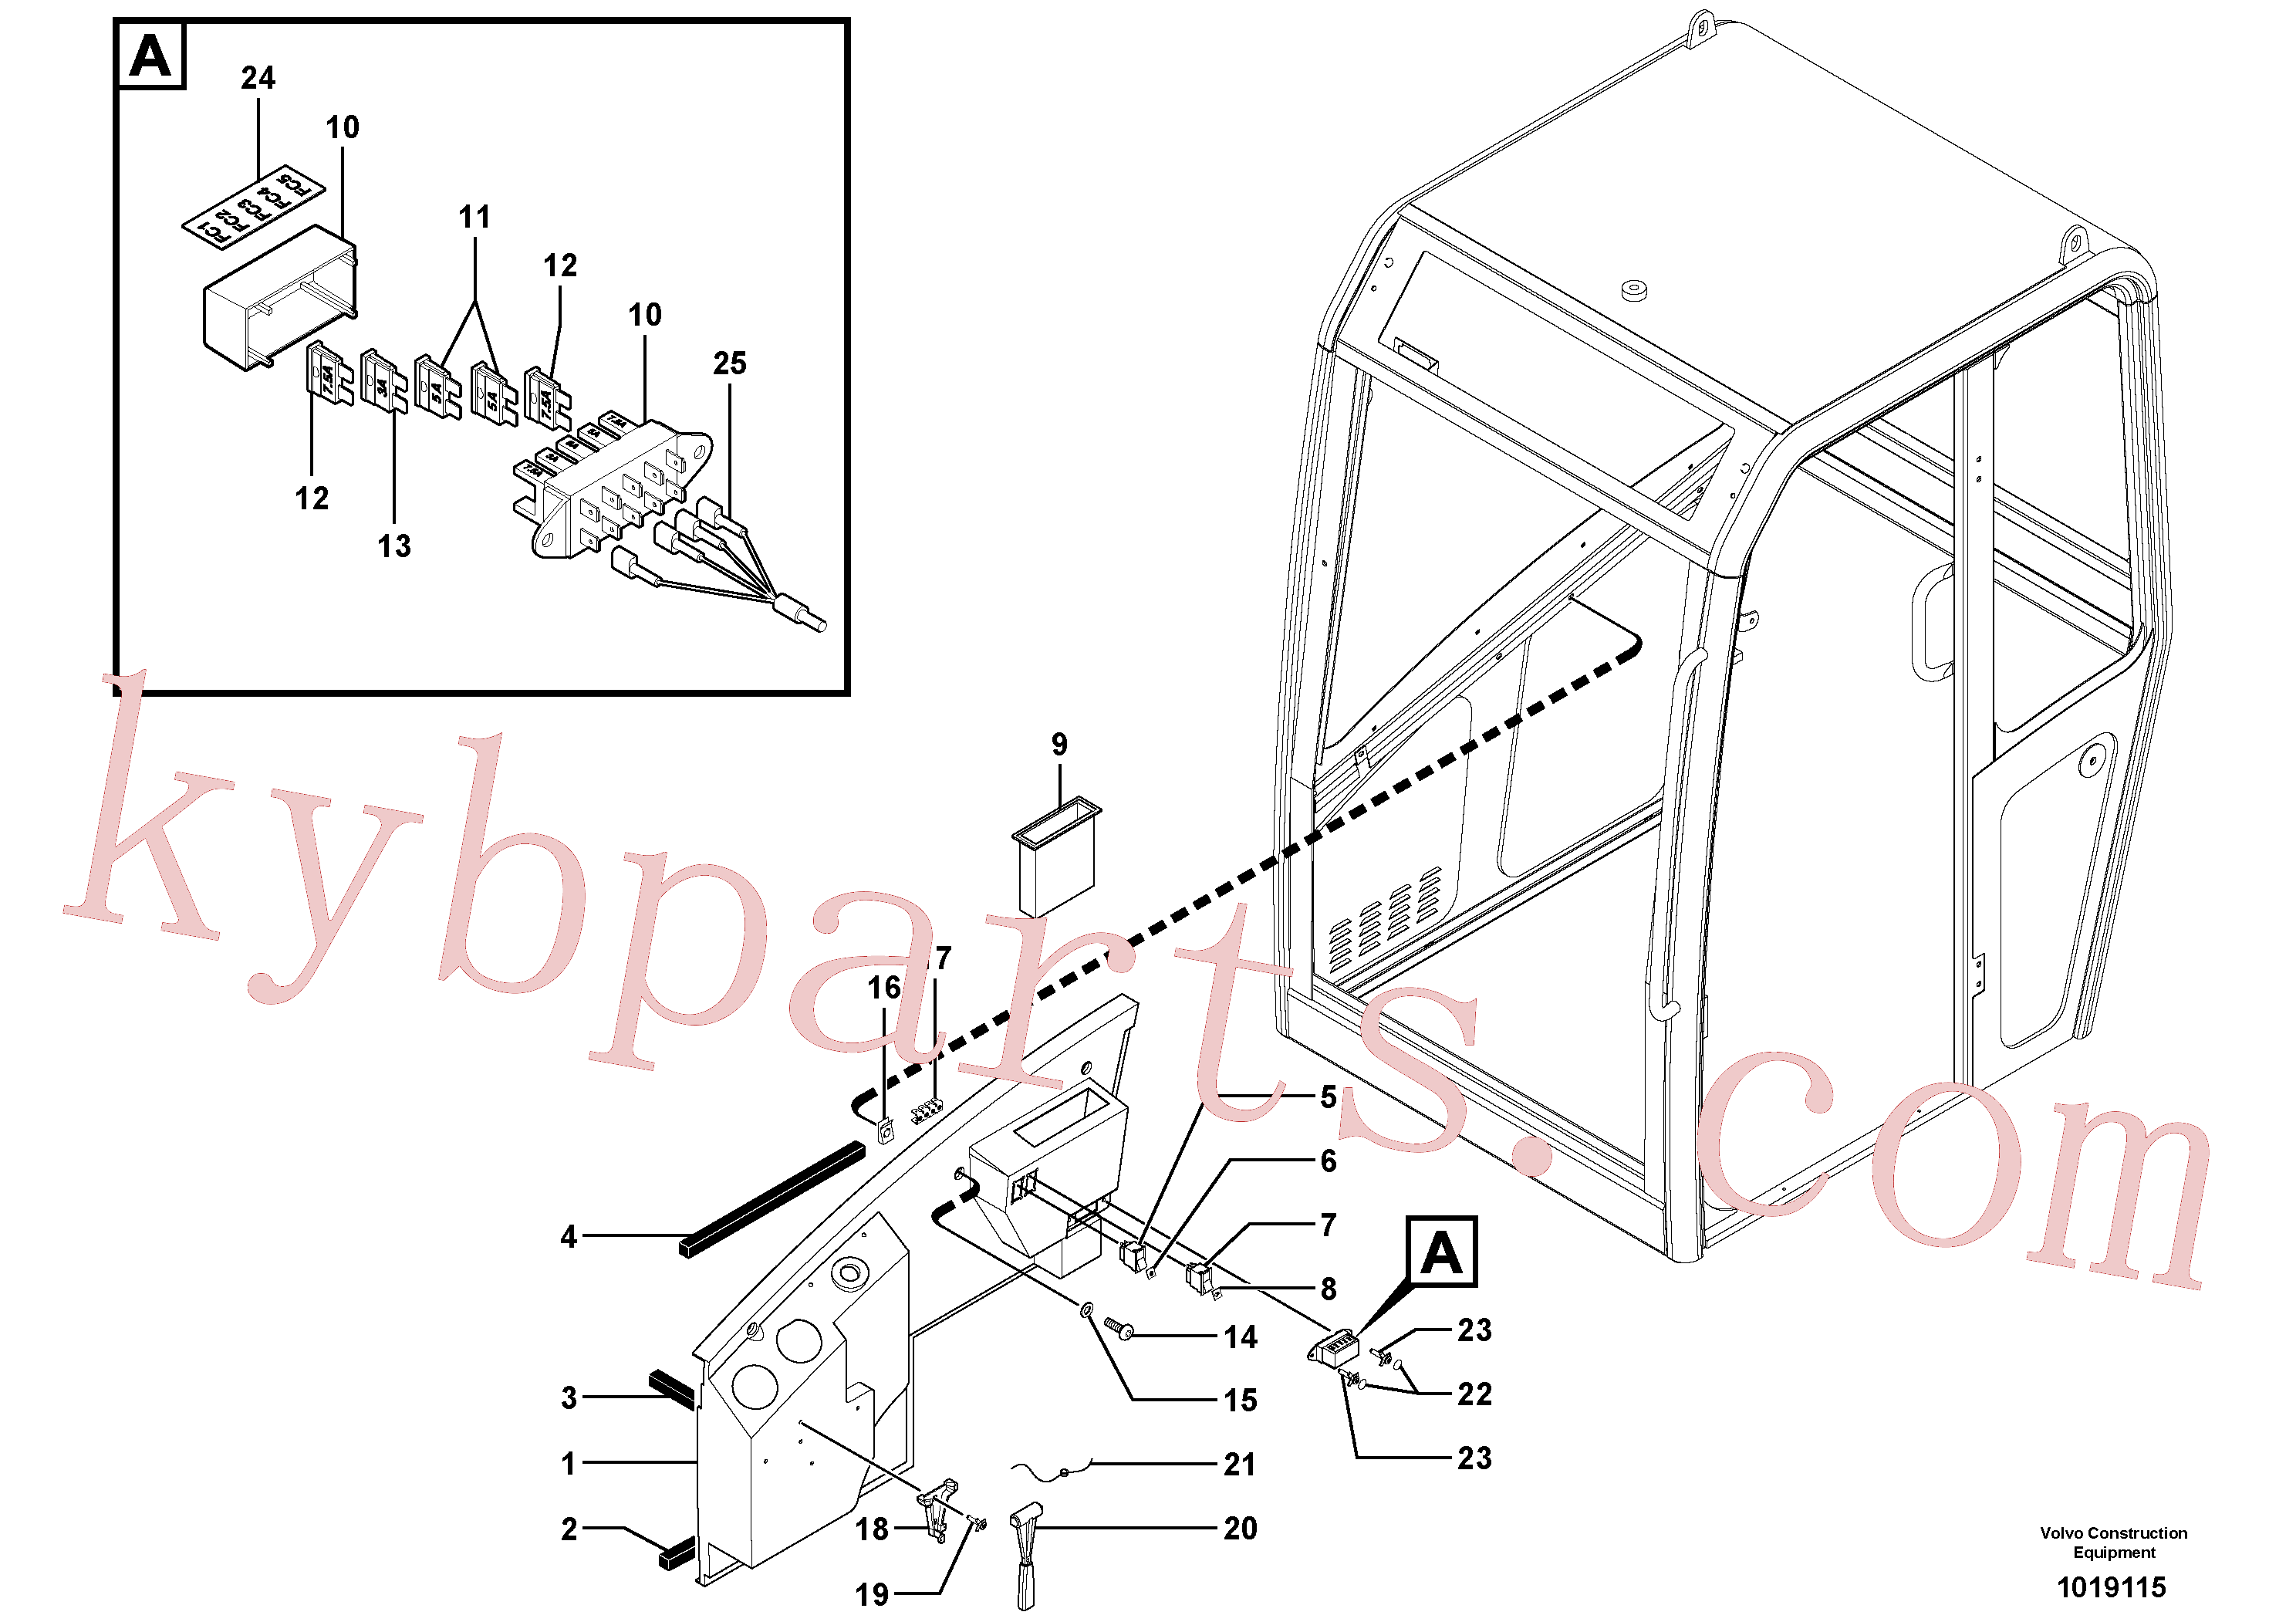 CH73040 for Volvo Cab : console(1019115 assembly)